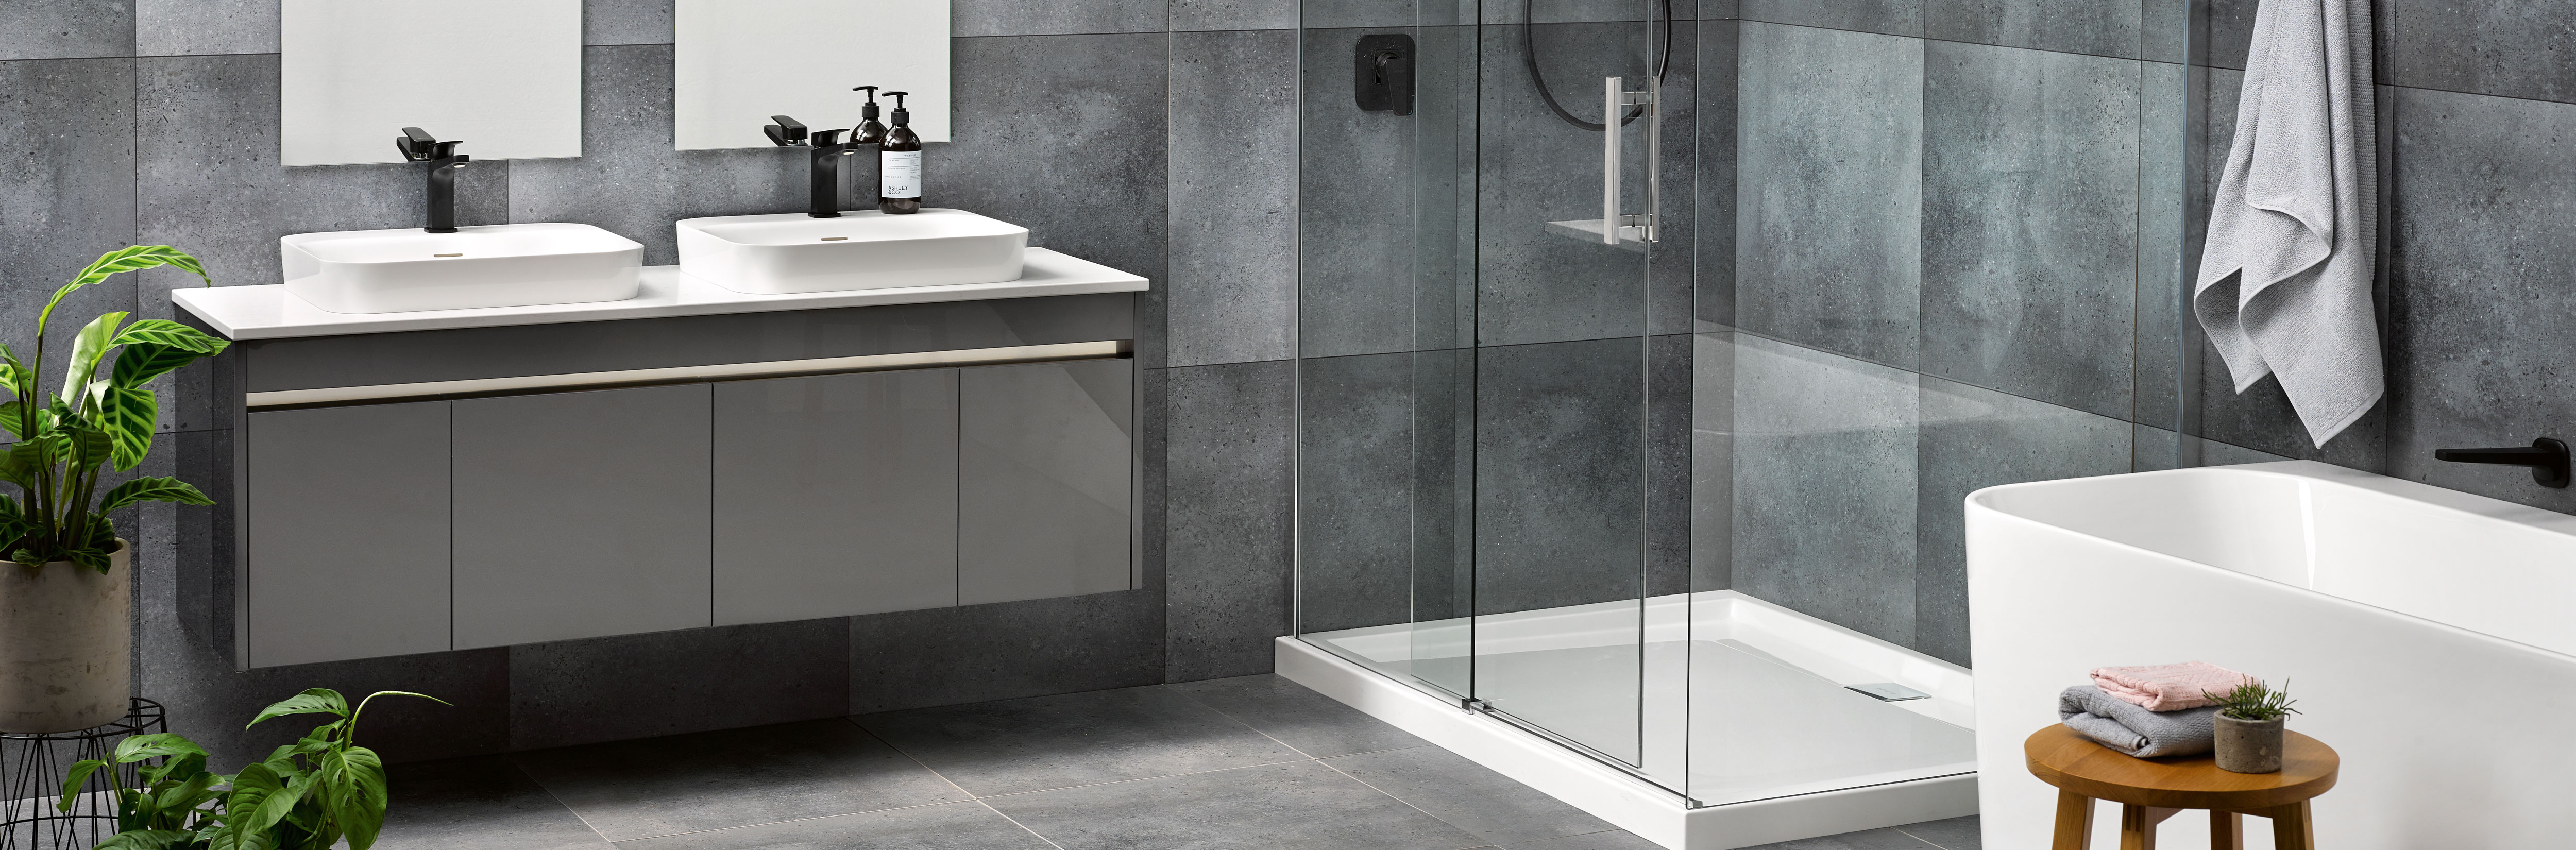 Athena bathrooms bathroomware designed for new zealand homes for Bathroom decor nz